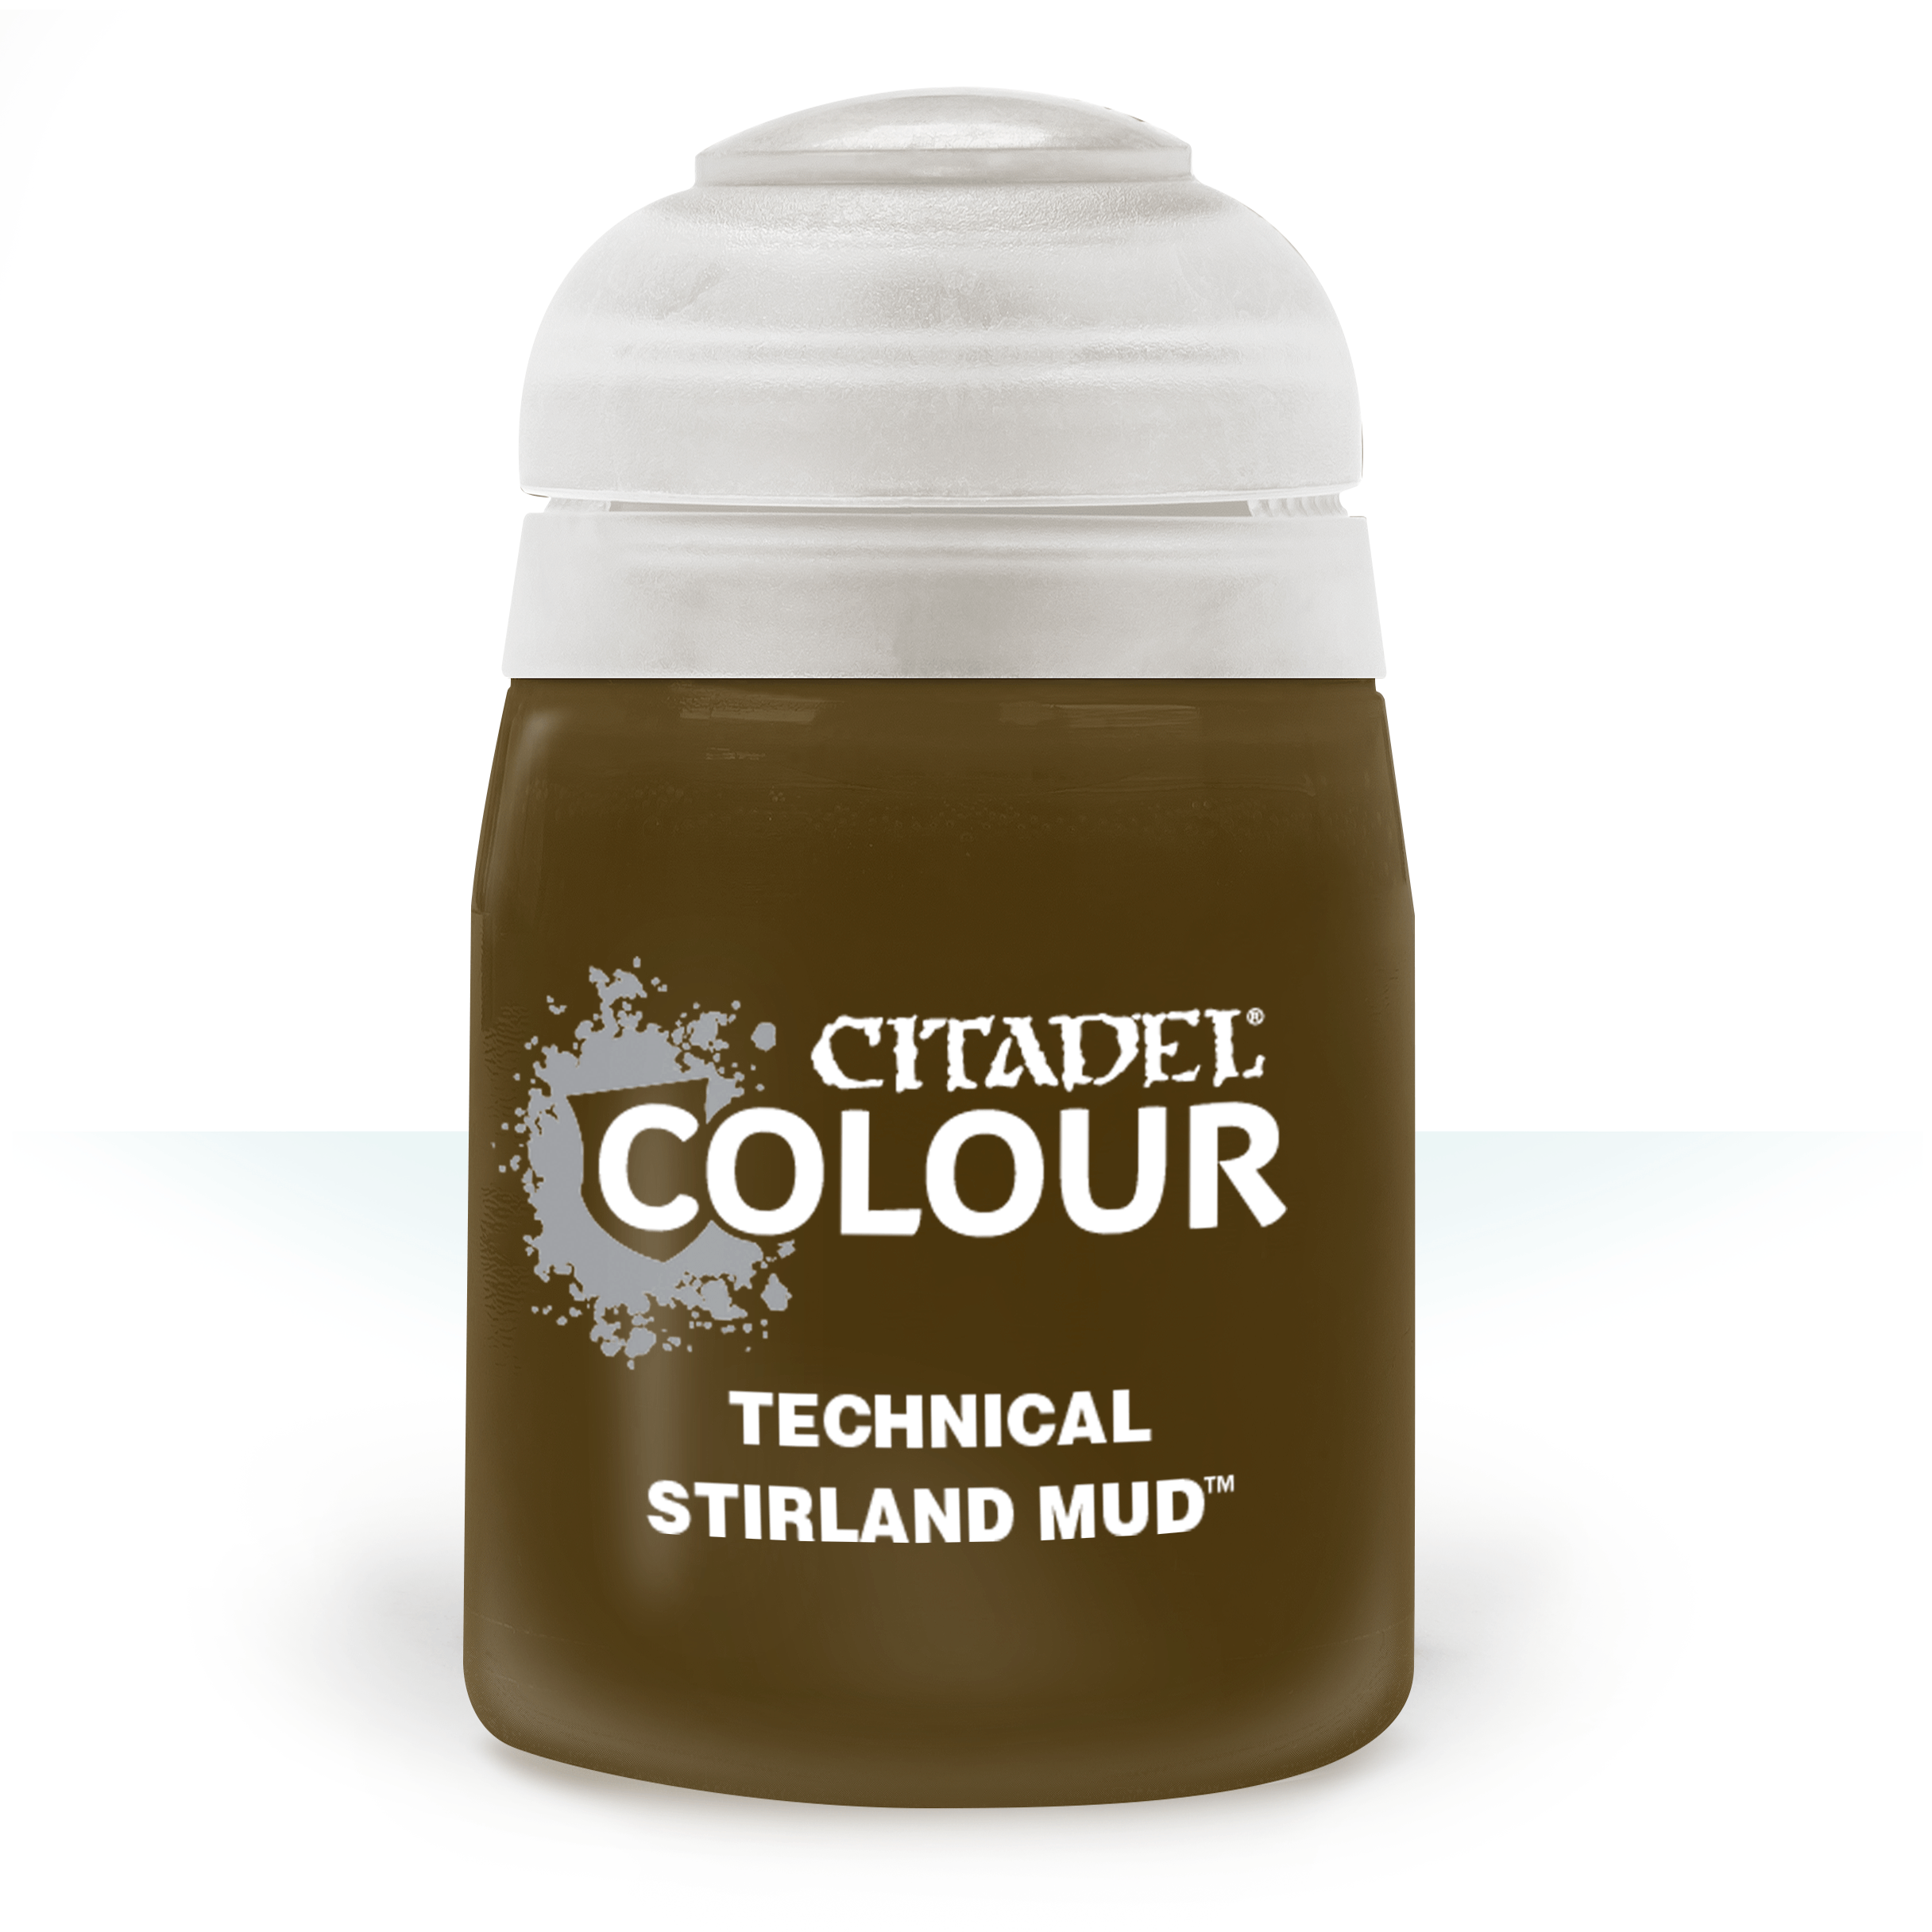 Stirland Mud, Citadel Technical 24ml